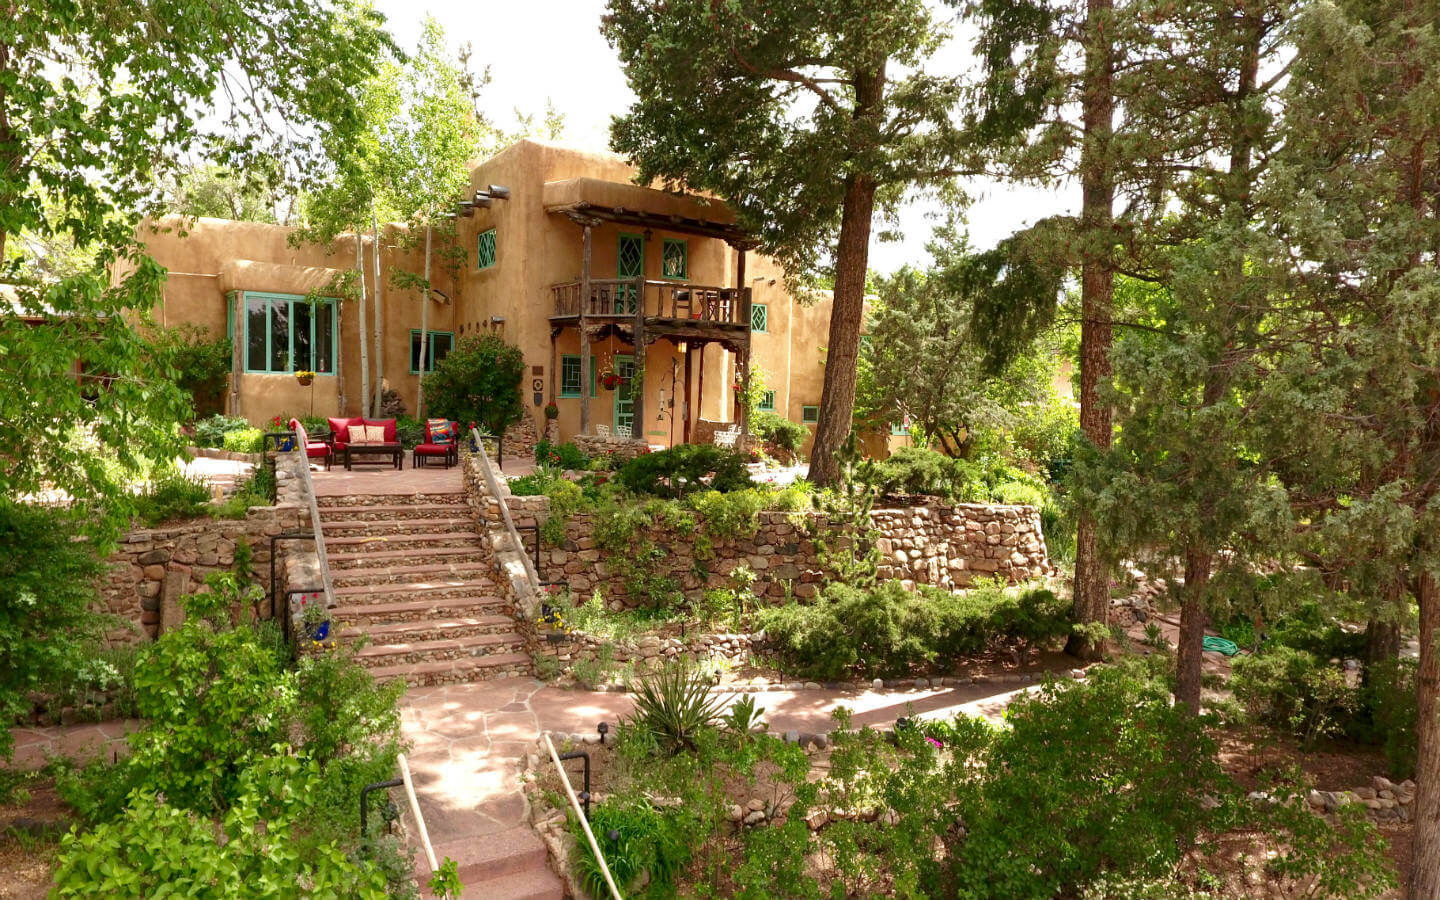 Santa Fe Pet Friendly Lodging - Pet Friendly room.